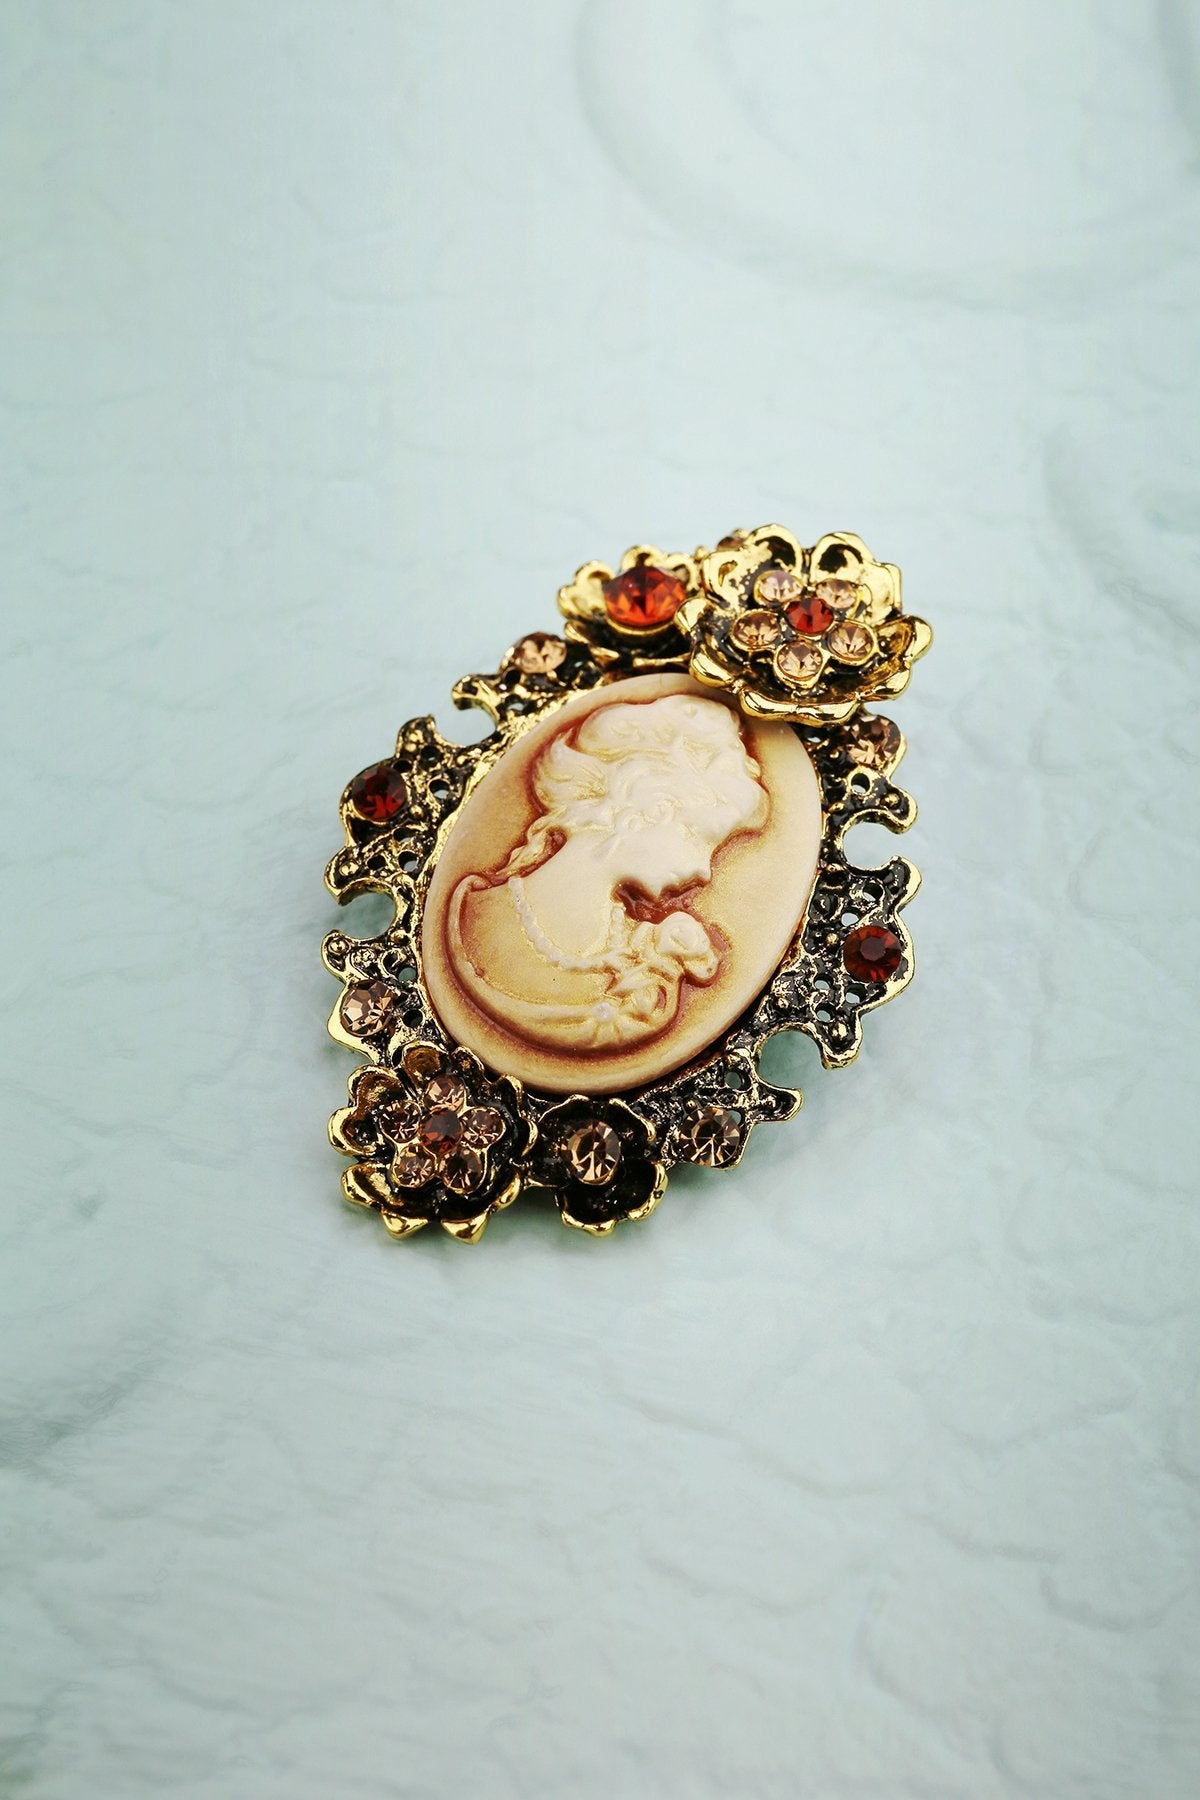 Rhinestone Beauty Brooch - ZAPAKA